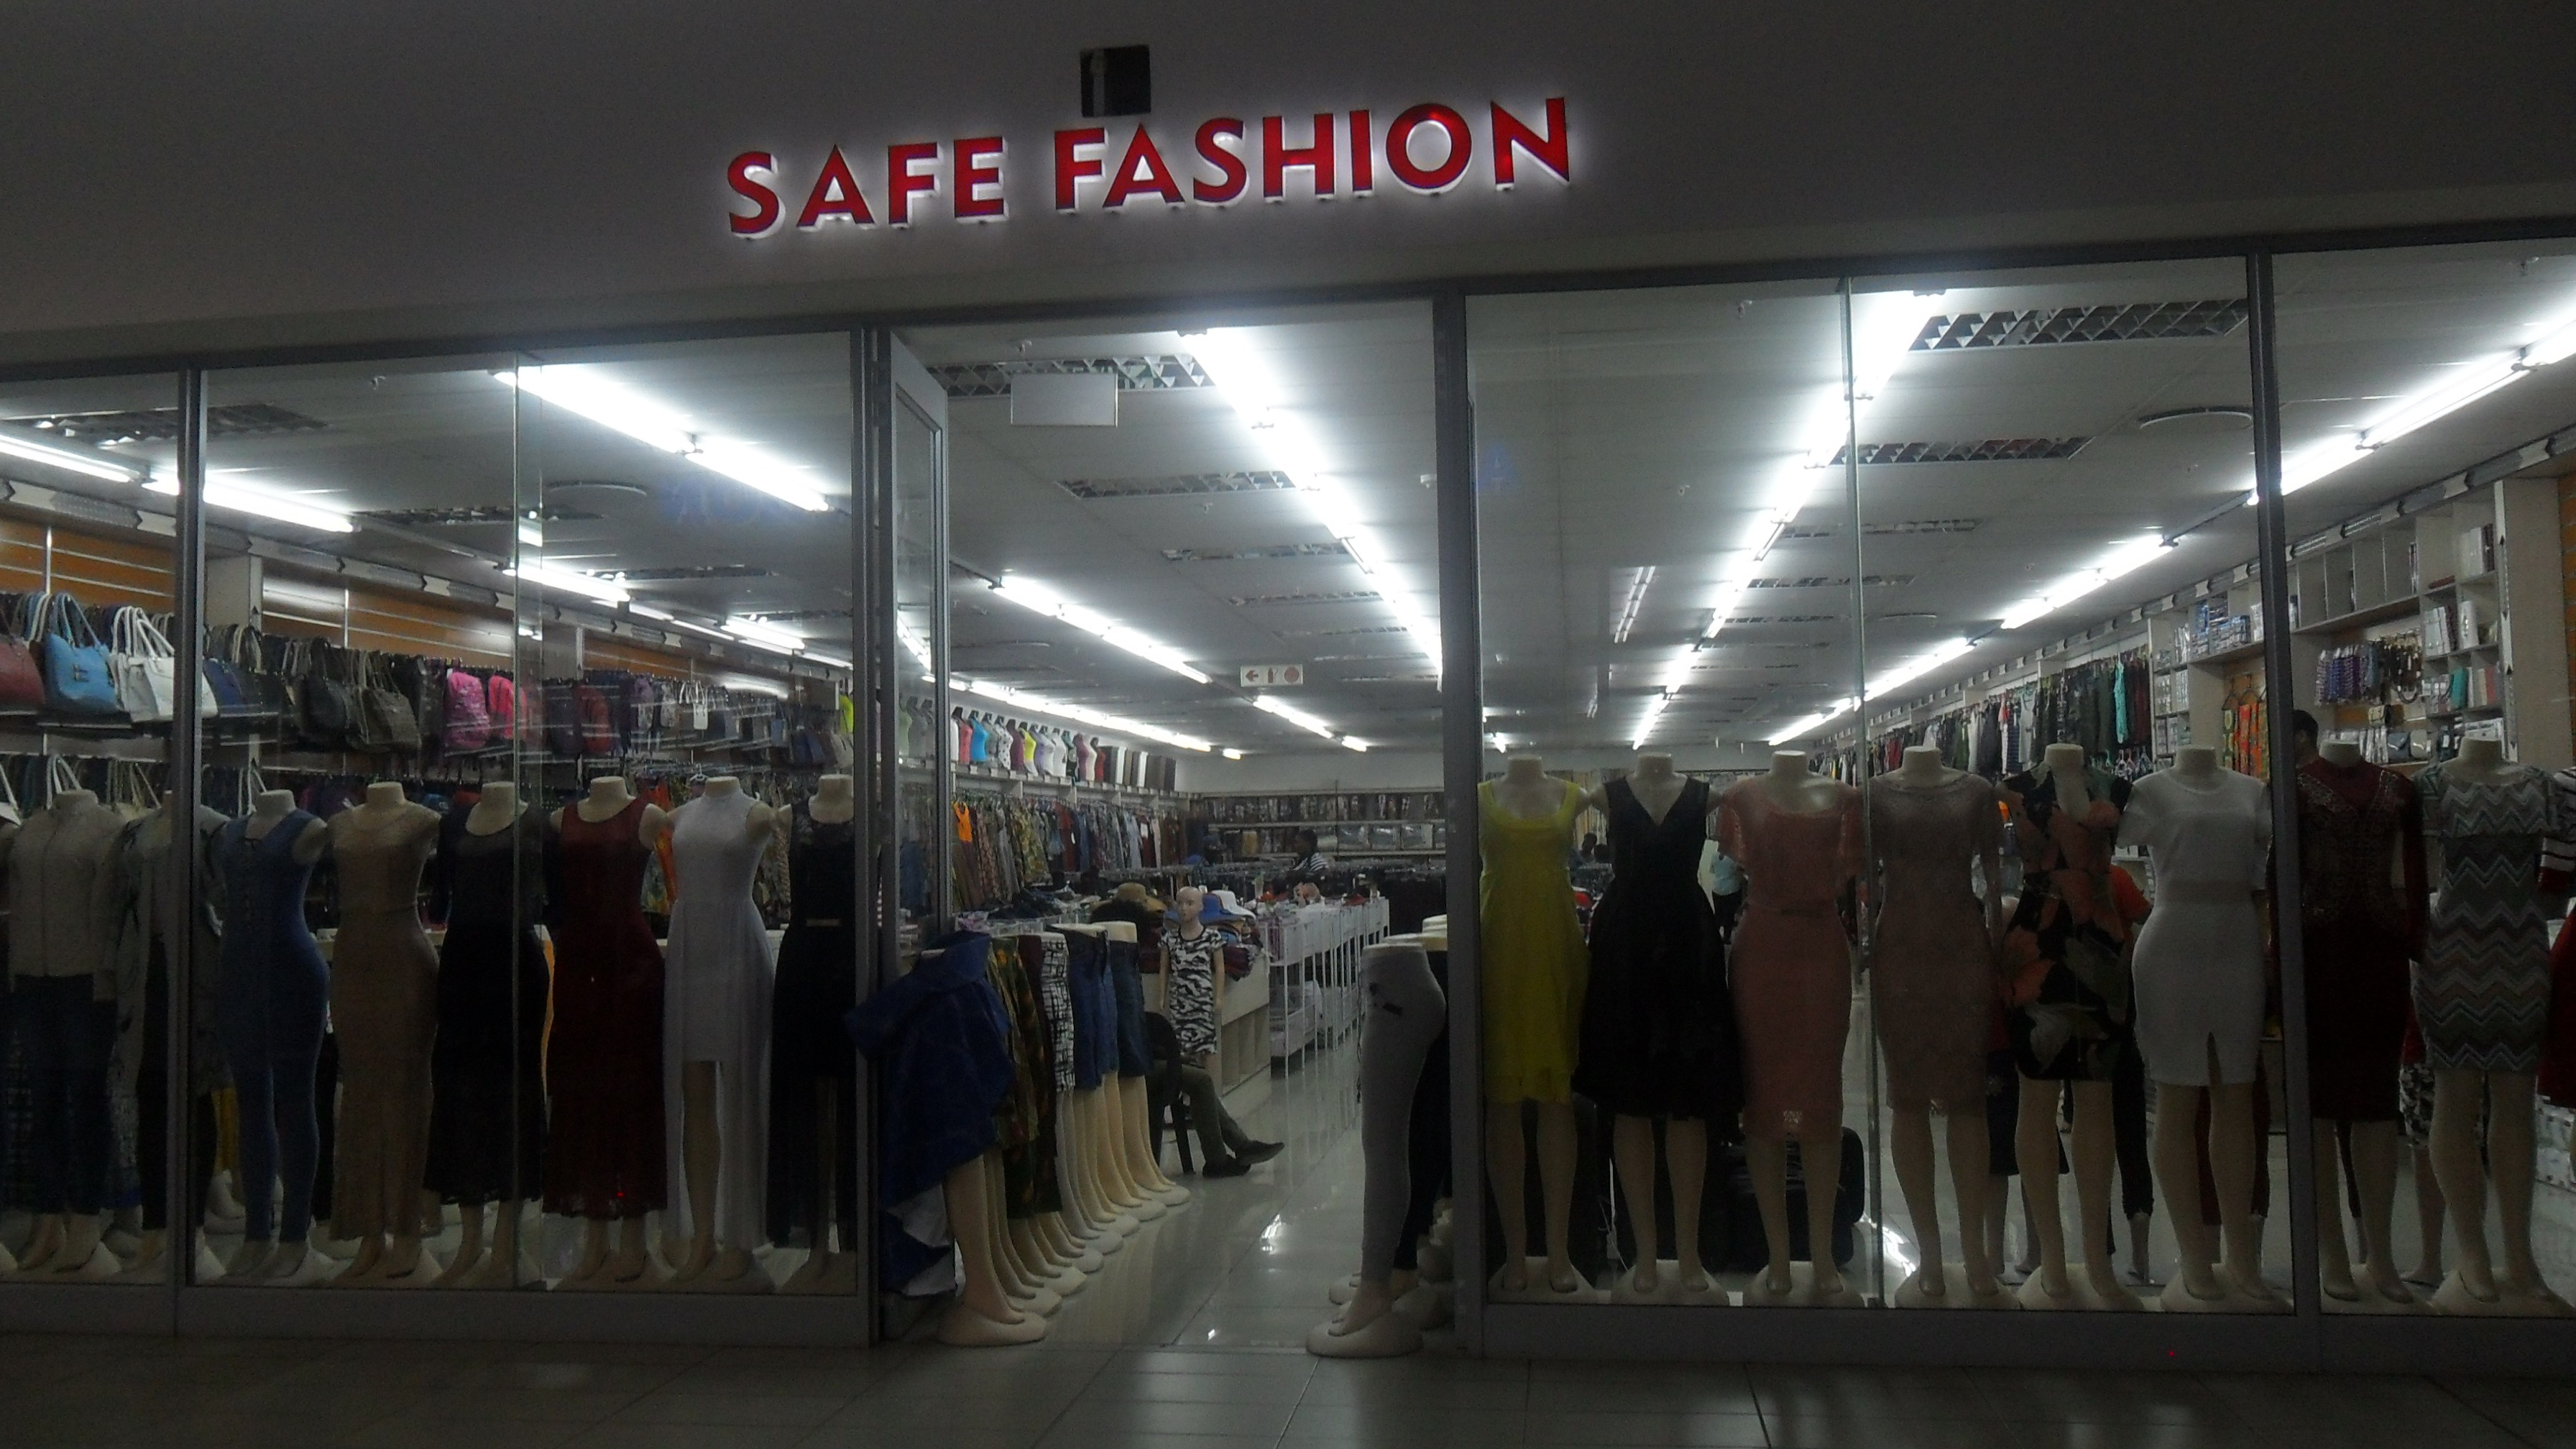 Safe Fashion